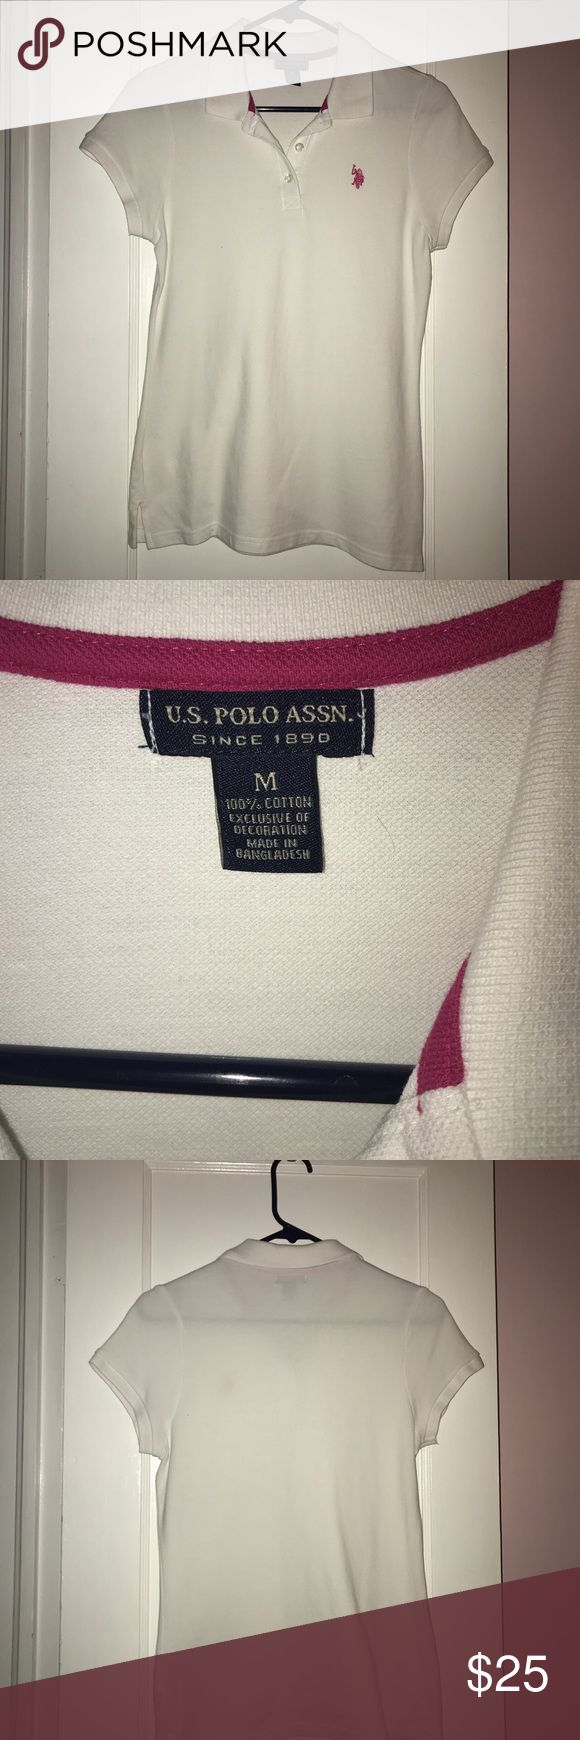 White and pink polo shirt white and pink polo baddie shirt NEVER USED Polo by Ralph Lauren Tops